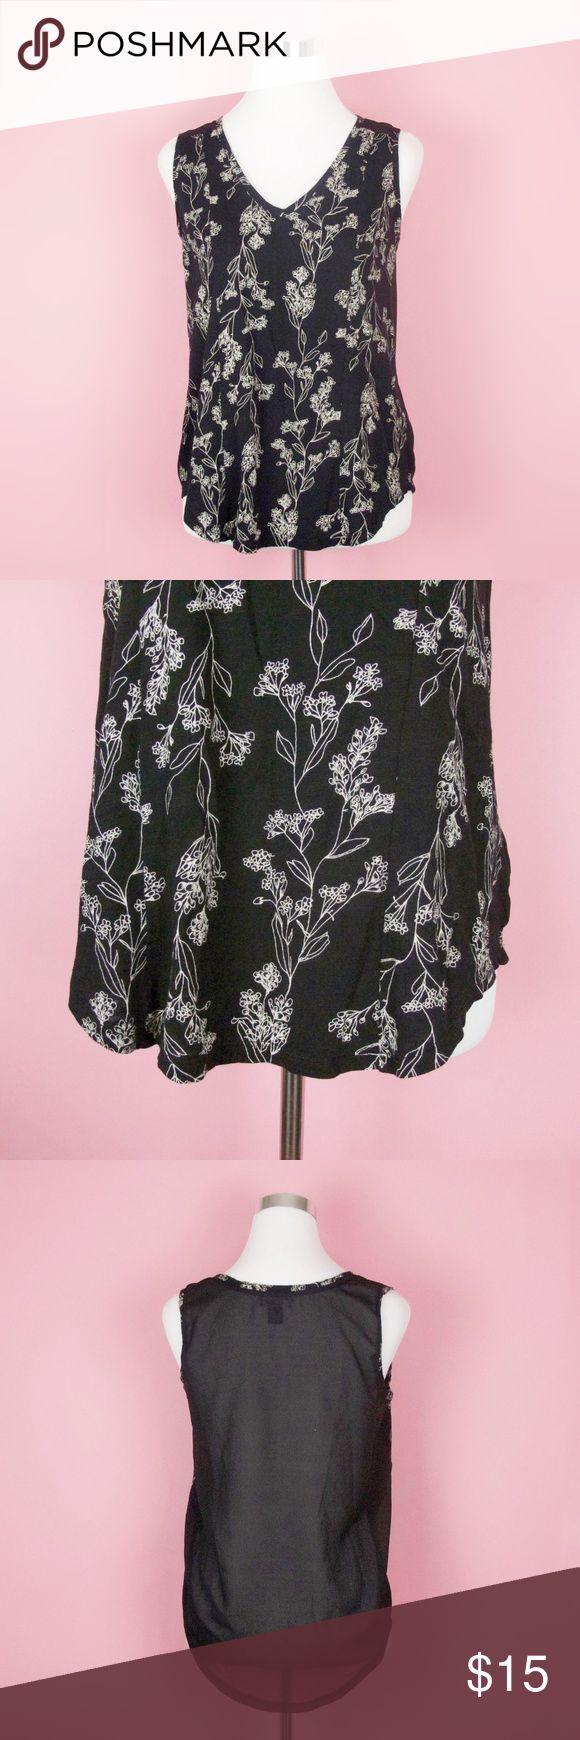 Old Navy Sleeveless Floral Blouse Sheer Back Tank Cute sleeveless blouse by Old Navy. Women's size small. In good overall condition. Black with beige floral outline. Sheer back panel. The front is 60% cotton, 40% modal. The sheer back material is 100% polyester.  Measurements (approximate): Bust: 36 inches, unstretched Total length: 25 inches Old Navy Tops Blouses